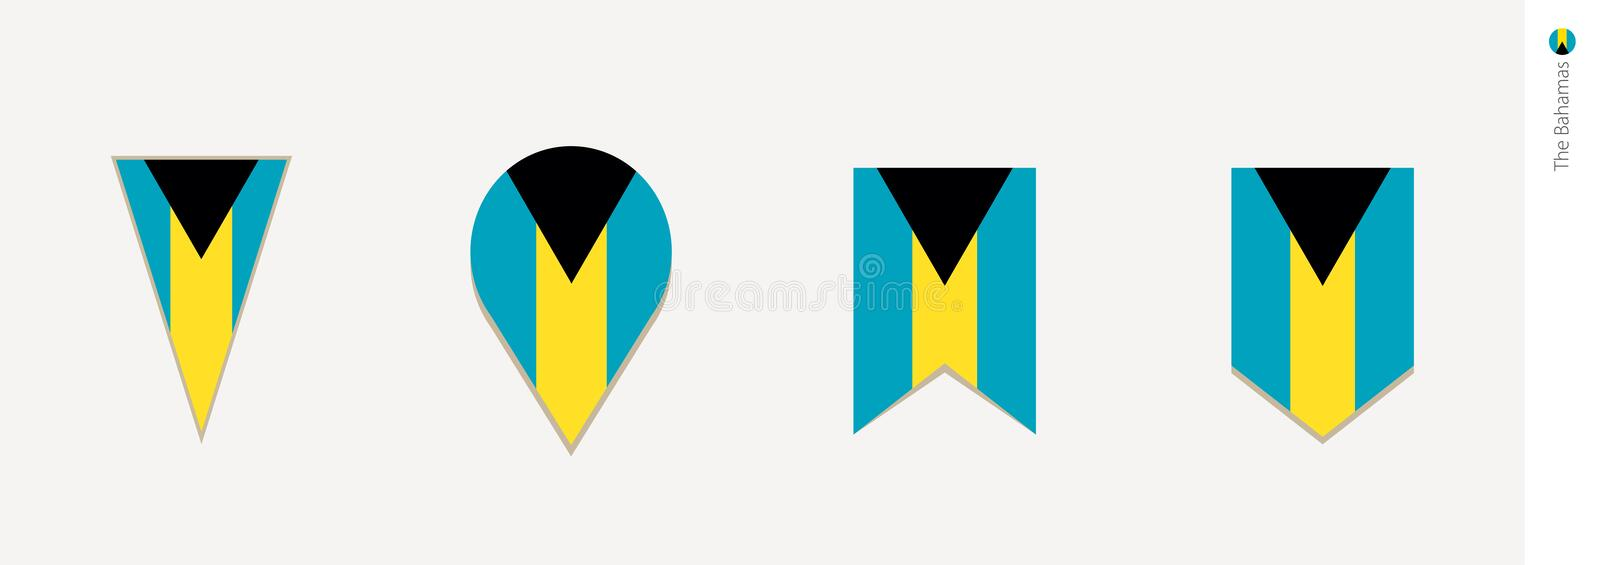 Le drapeau des Bahamas dans la conception verticale, illustration de vecteur illustration stock